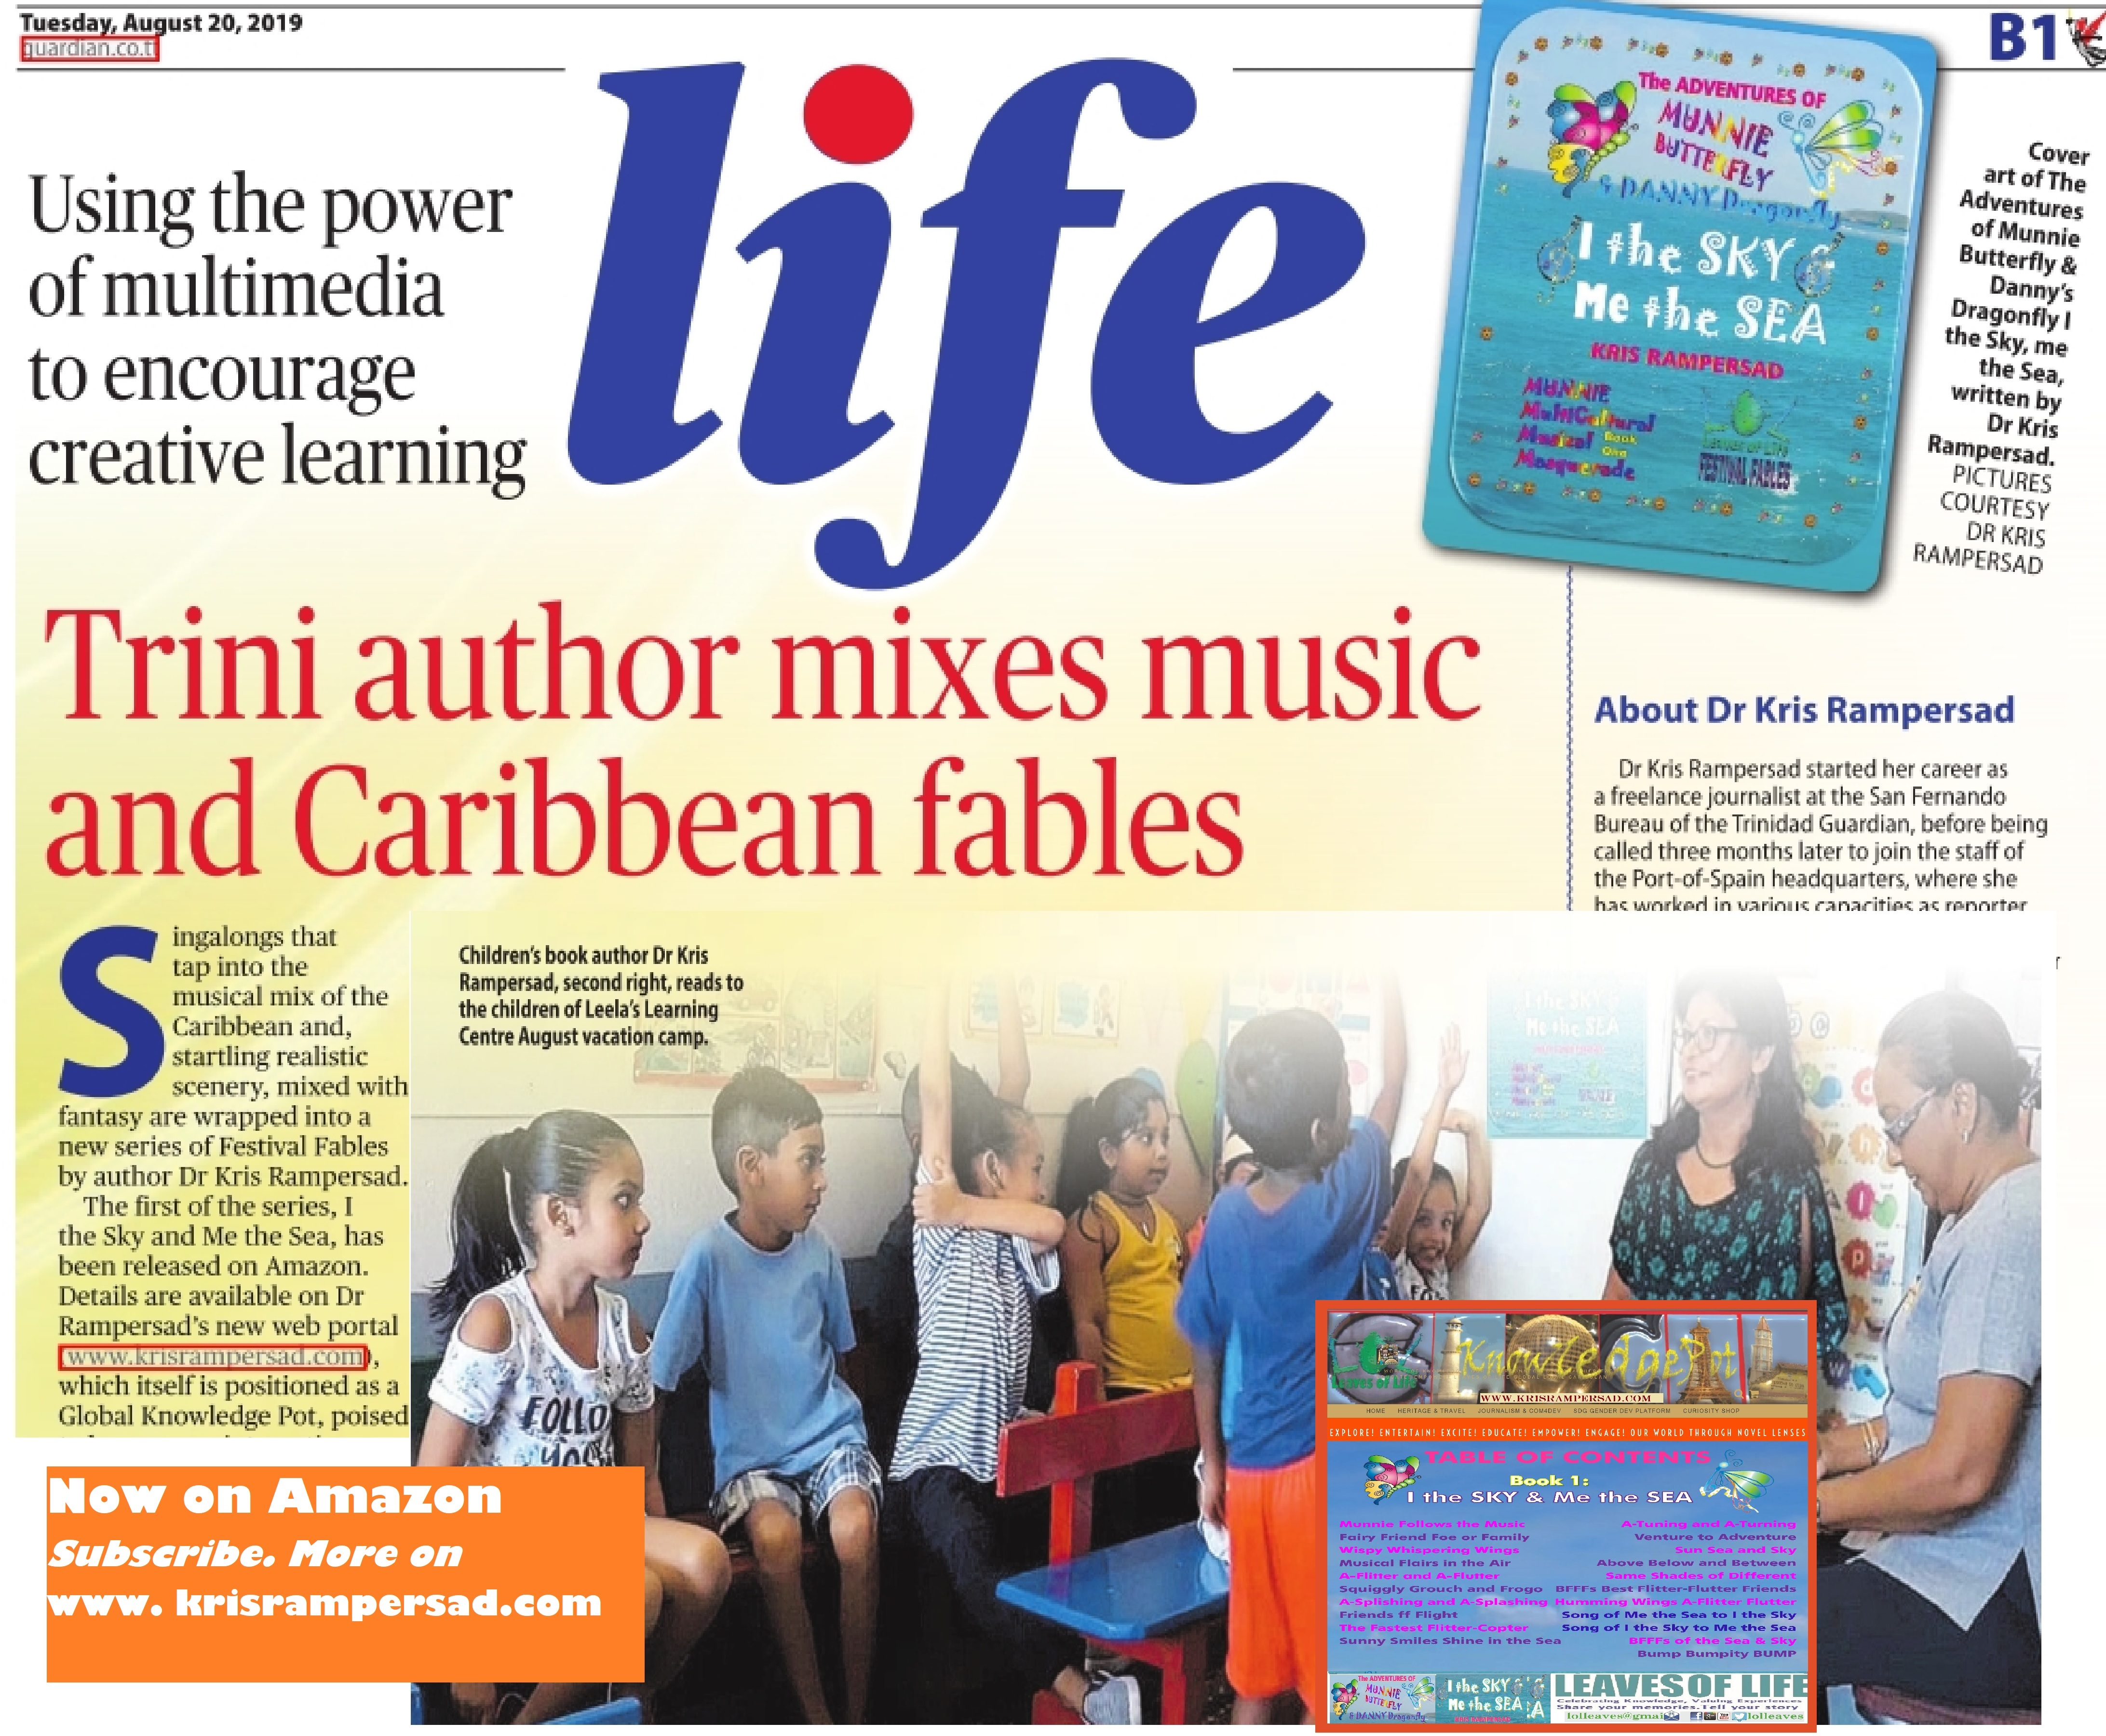 Children respond to Musical Mix for Creative Learnings Guardian Reviews Munnie Adventures